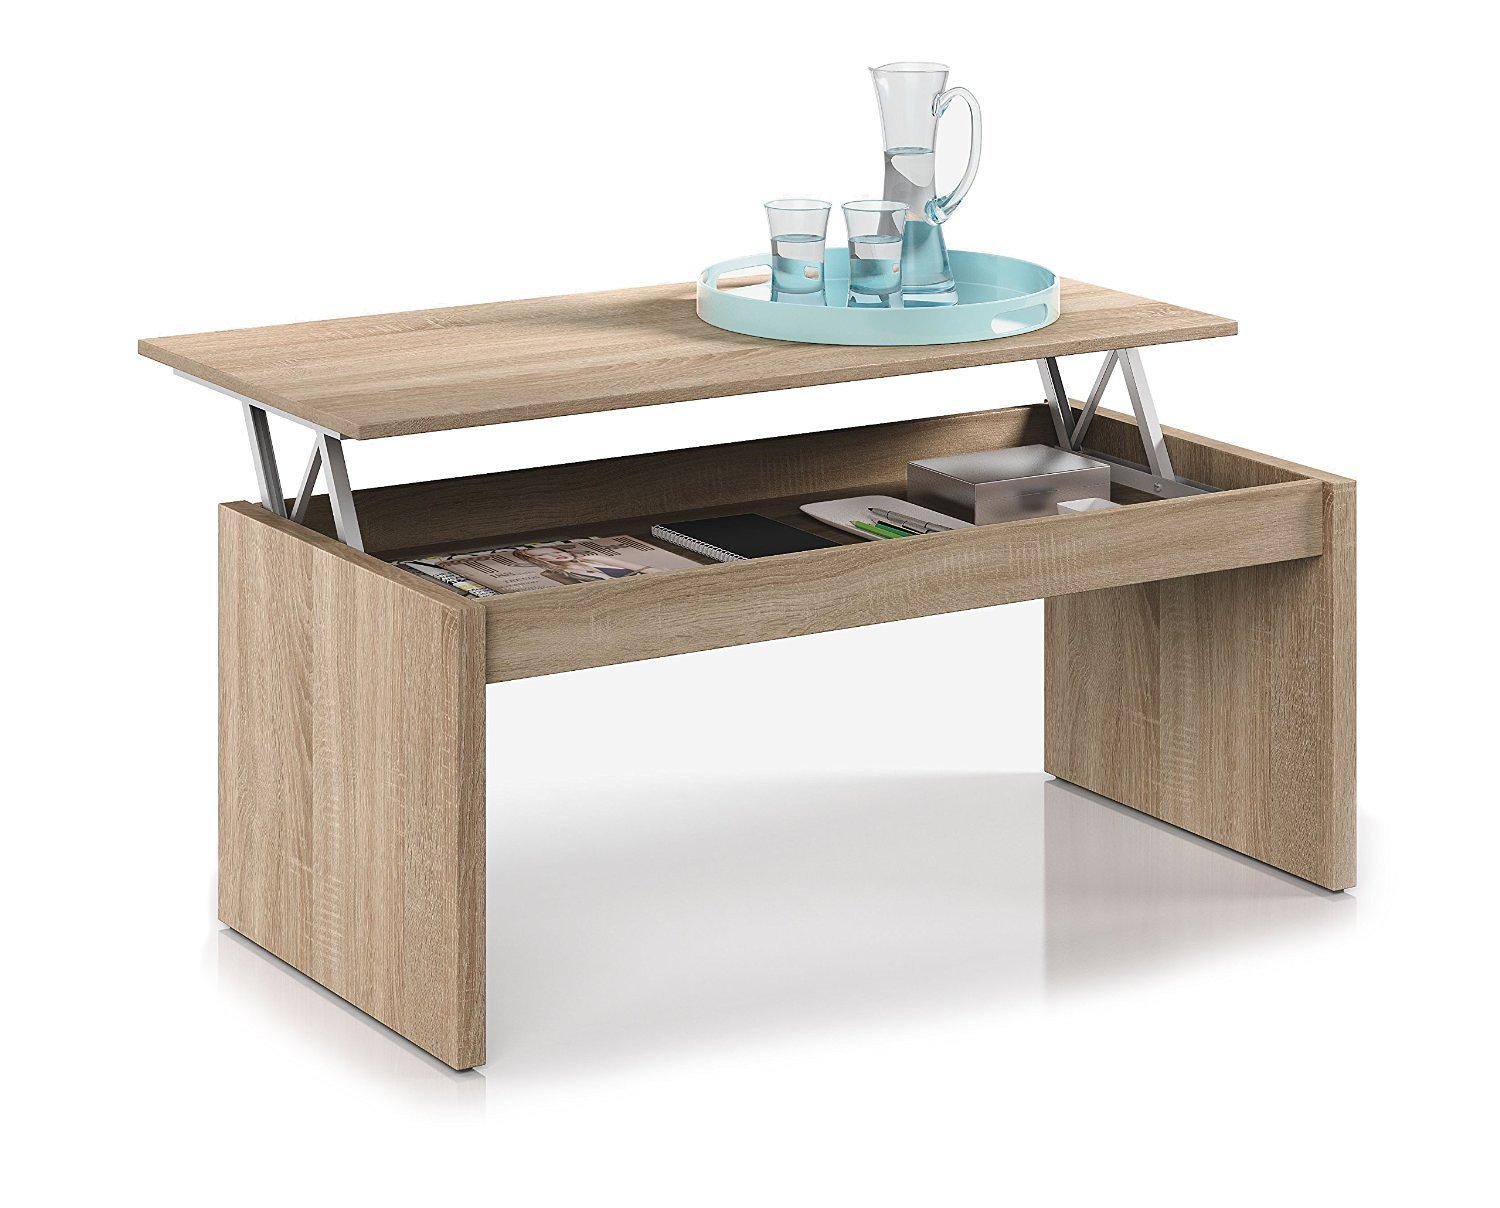 Fabulous habitdesign f table basse chne naturel avec - Table basse transformable en table haute ikea ...